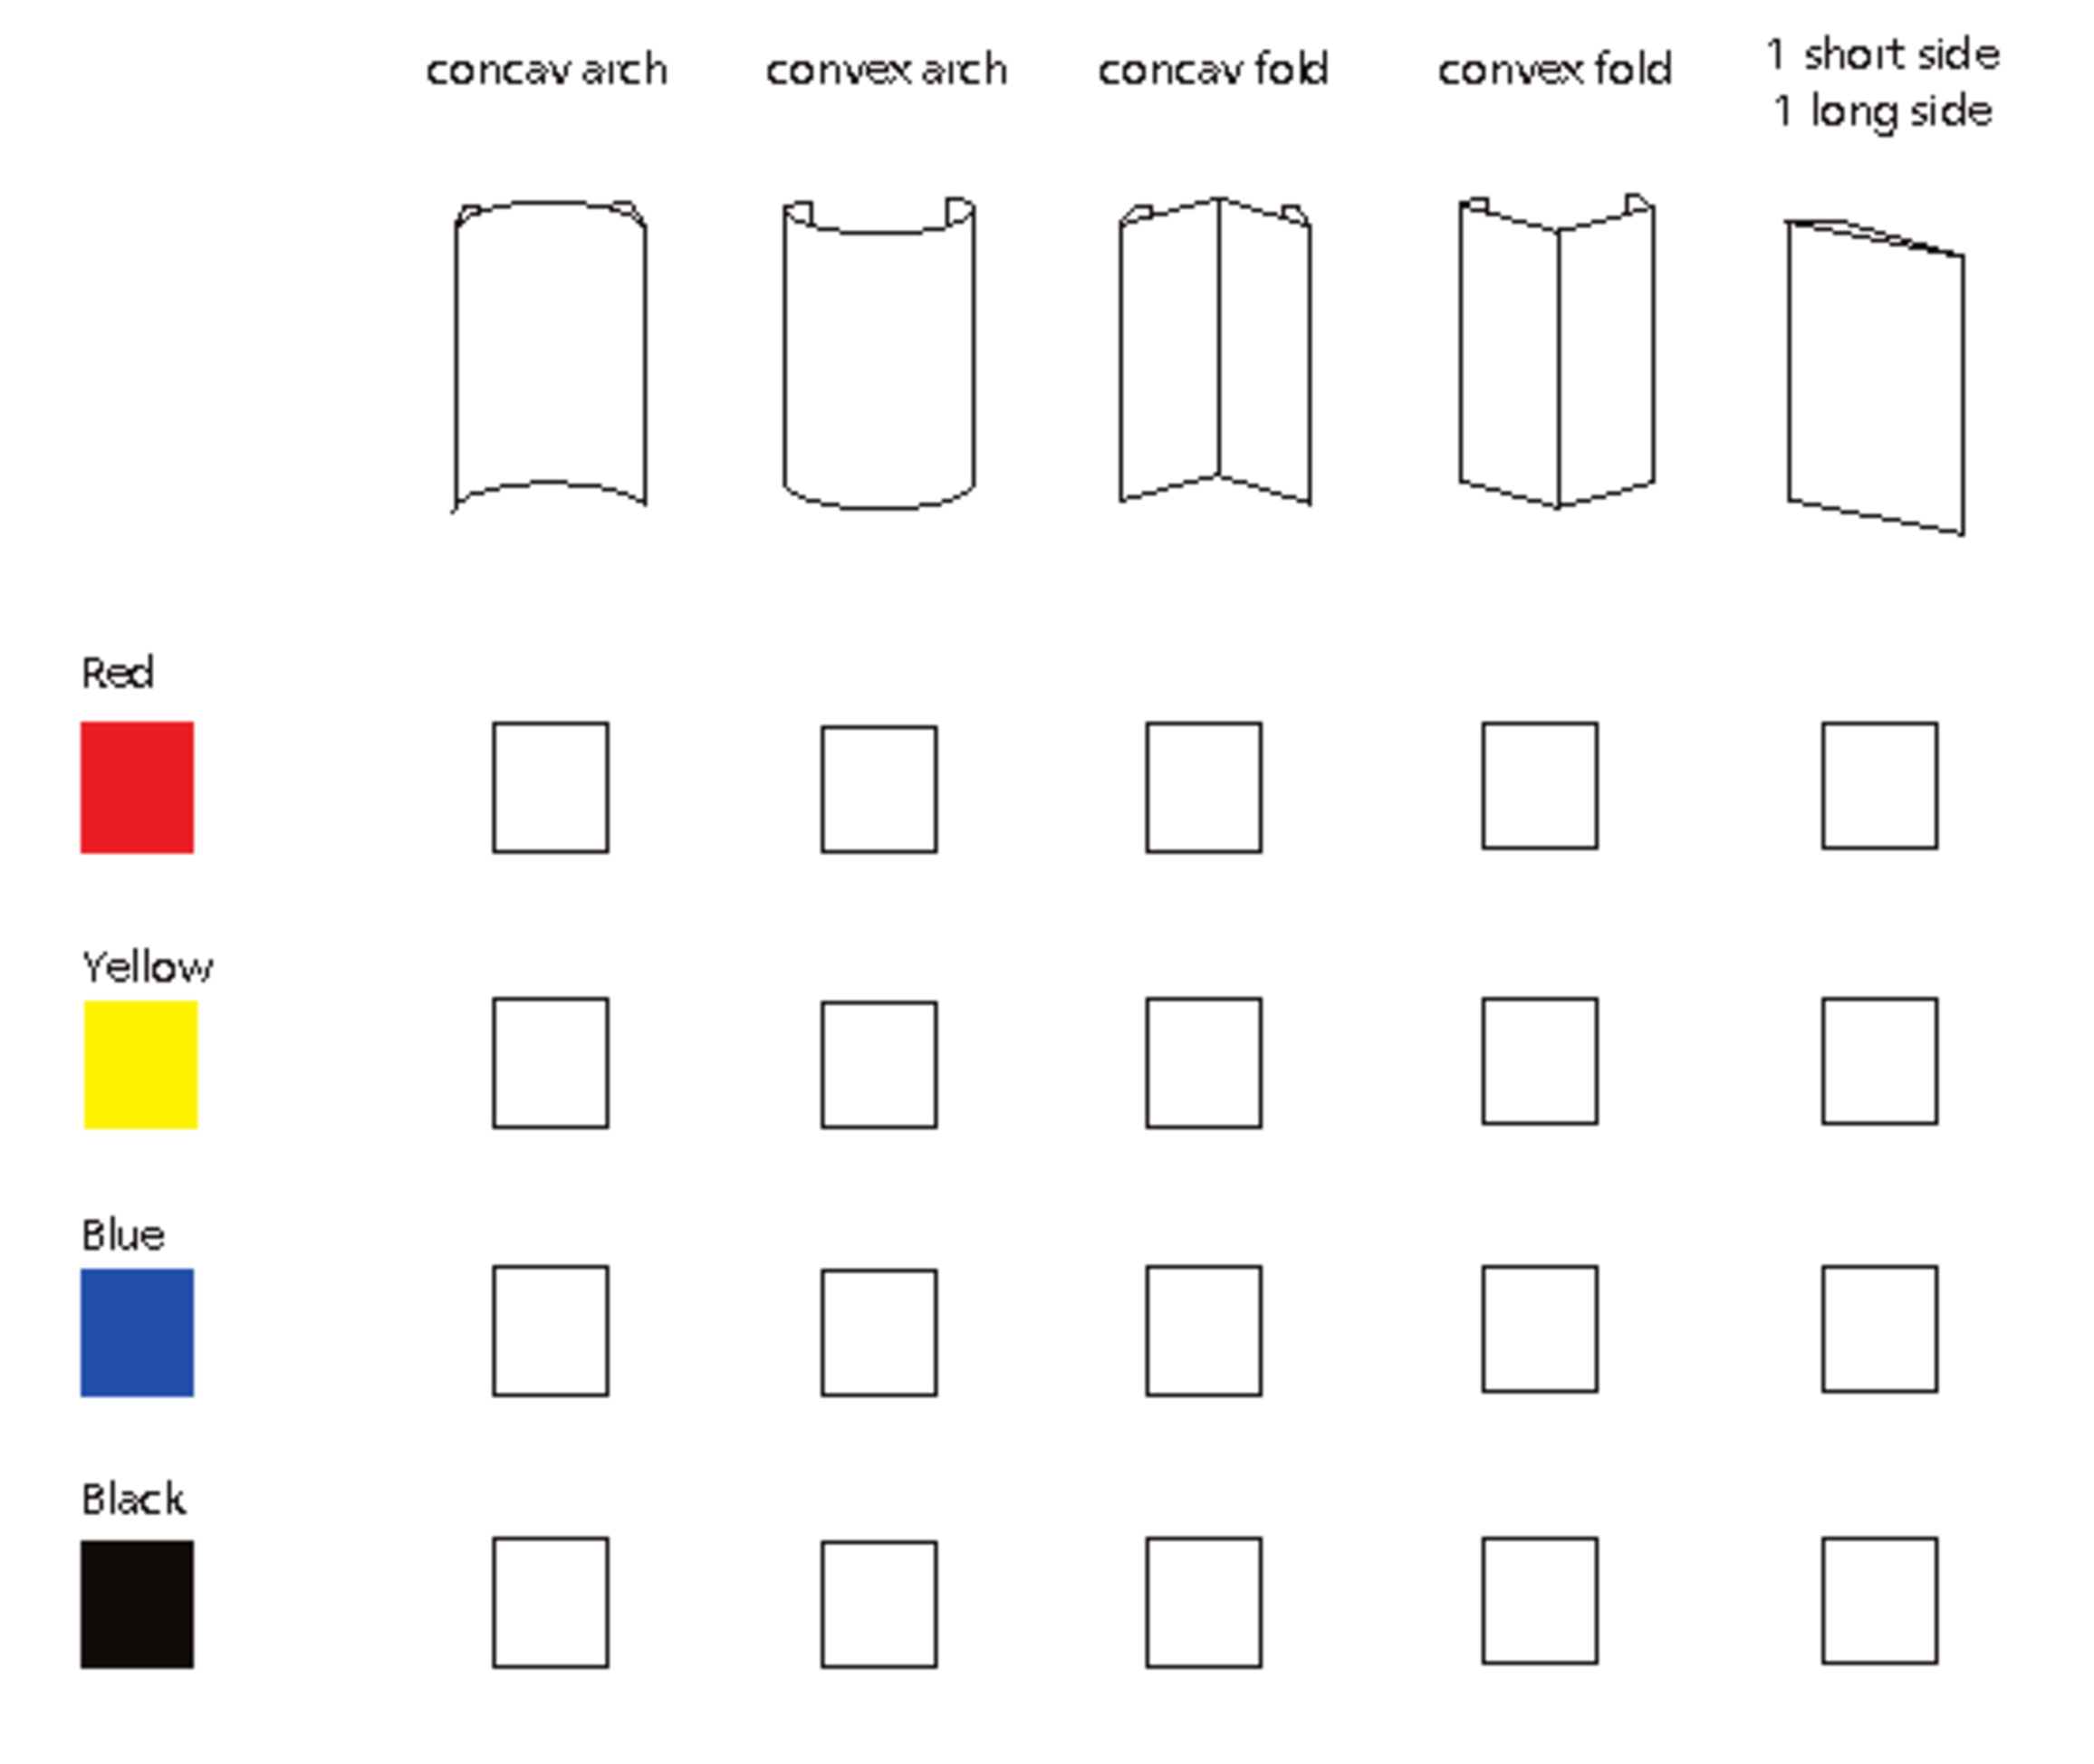 "This schematic rendering depicts five different shapes described in the top row as a ""concave arch, convex arch, concave fold, convex fold, [and] 1 short side/1 long side."" A column on the left side provides four color options, ""Red, Yellow, Blue, Black,"" each with a small square of pigment to illustrate the respective color. A grid of 20 small check boxes appears below the top row and to the right of the left column."